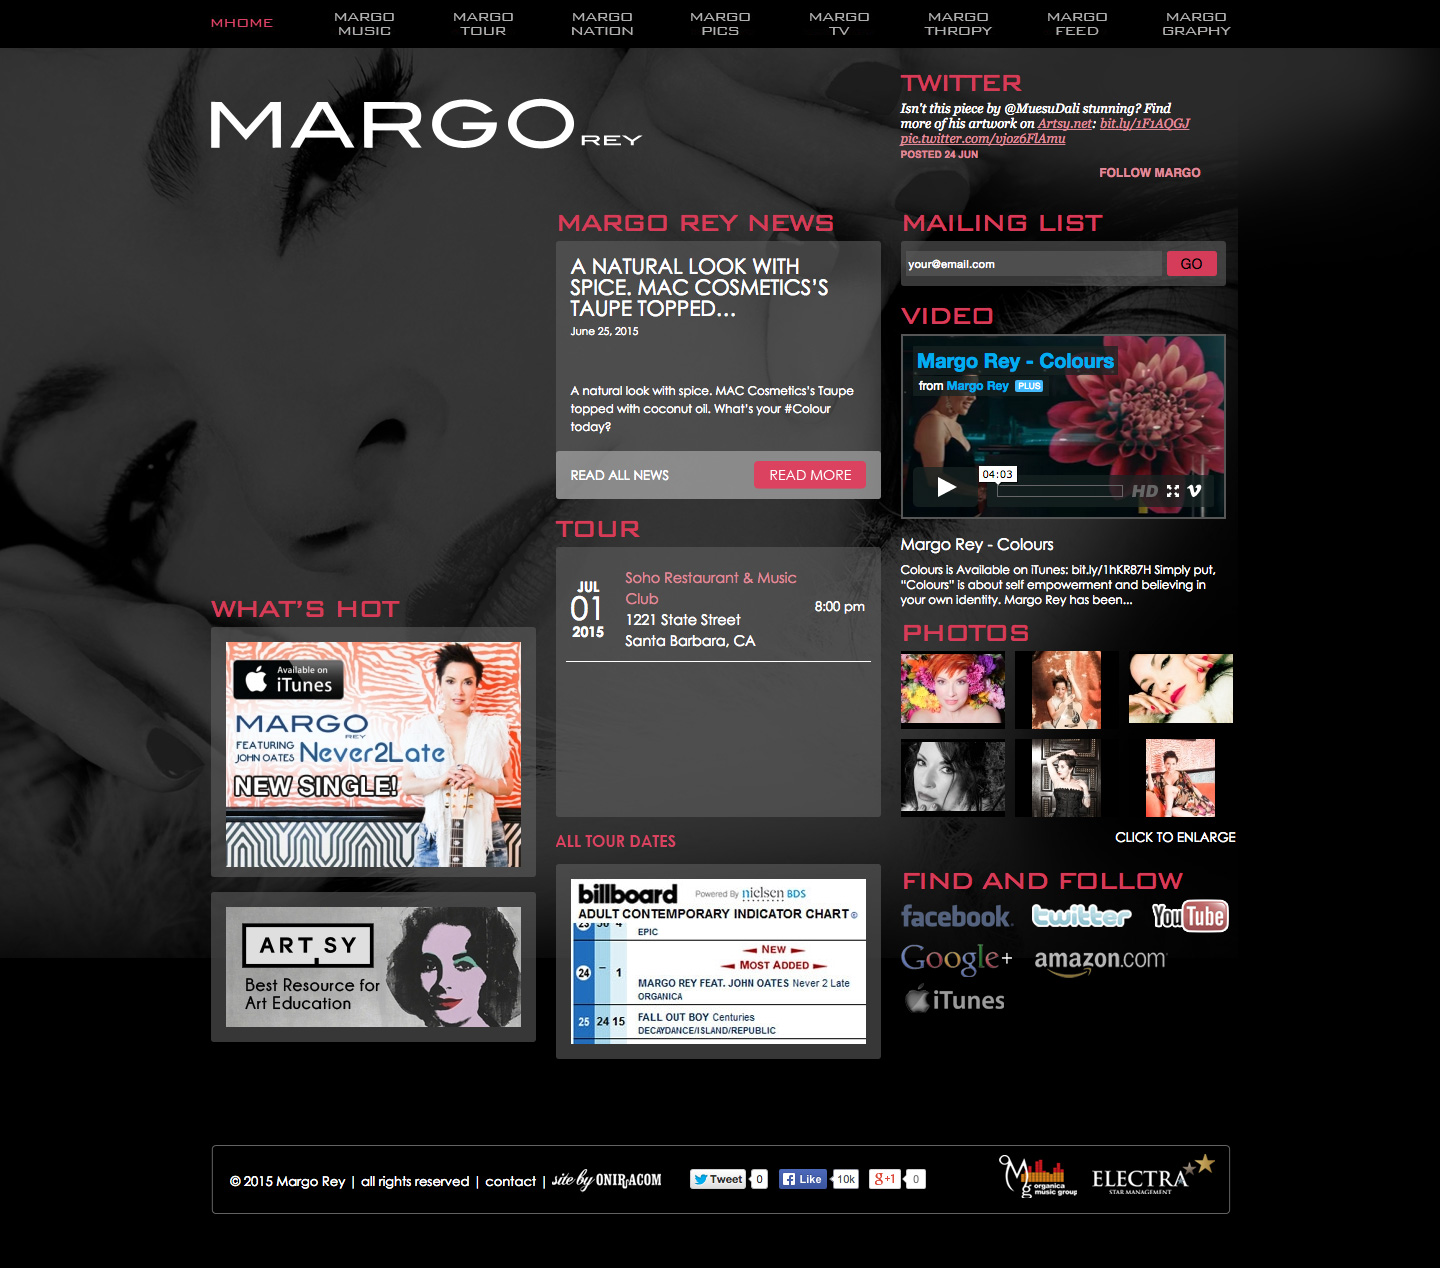 Margo Rey website built by Aquatic in San Francisco